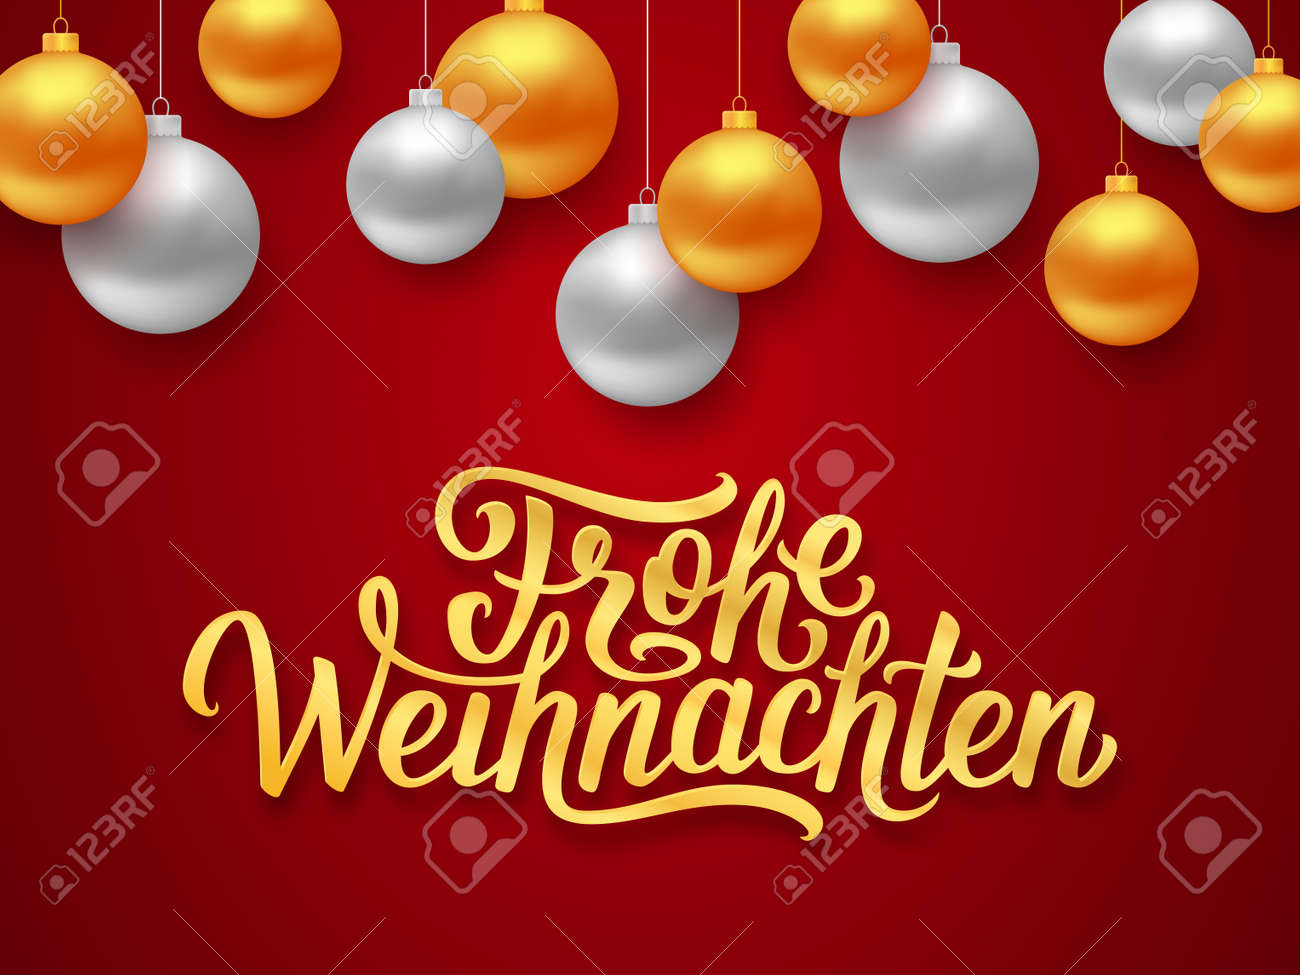 Frohe weihnachten deutsch merry christmas seasons greetings text frohe weihnachten deutsch merry christmas seasons greetings text on red background with gold and silver hanging m4hsunfo